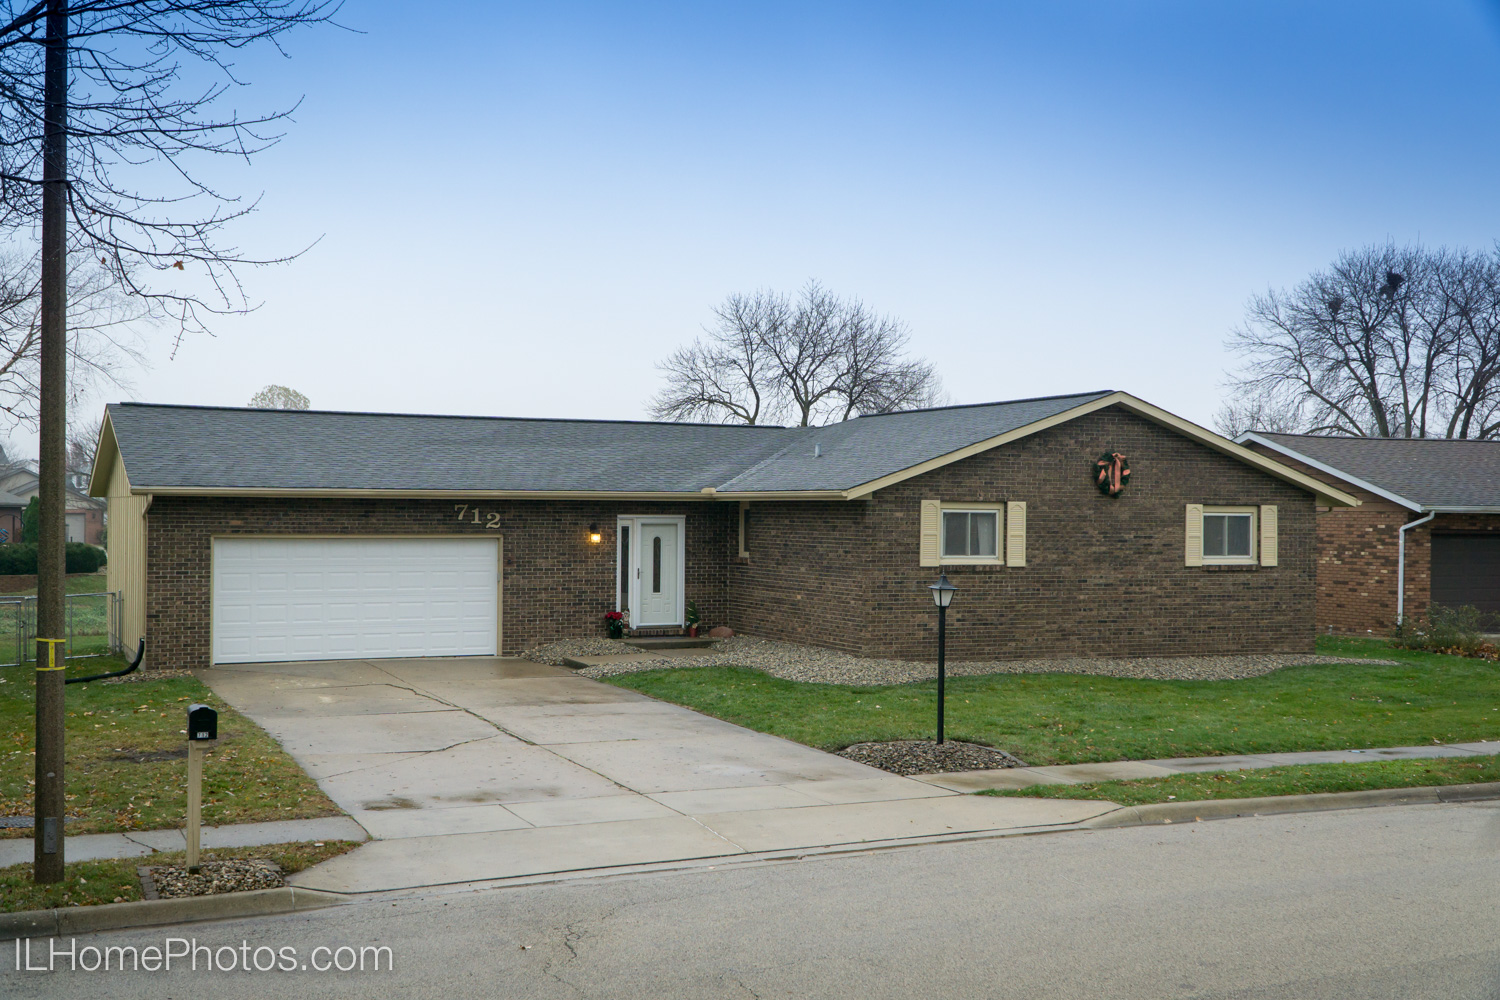 Exterior home photograph for real estate in Morton, IL :: Illinois Home Photography by Michael Gowin, Lincoln, IL